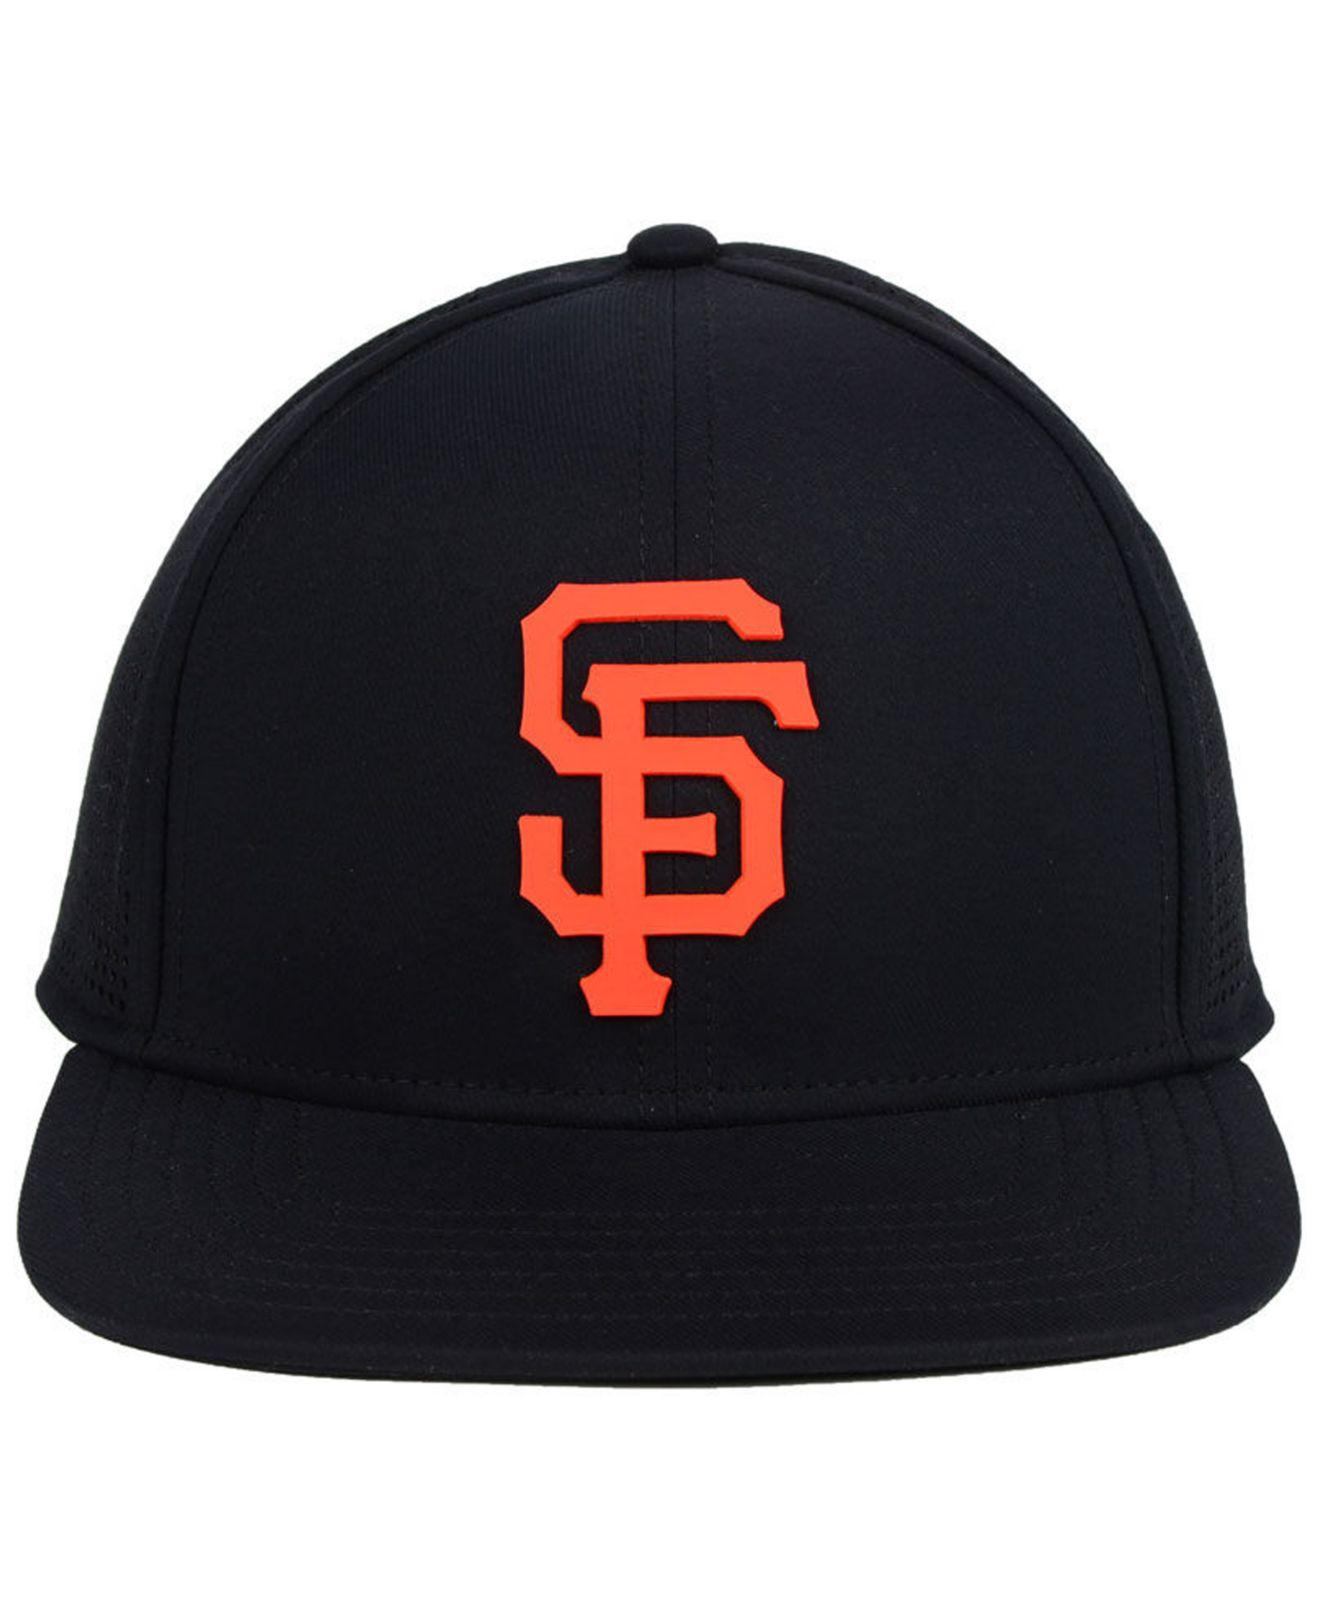 05a8786f375 ... inexpensive lyst under armour san francisco giants supervent cap in  black for men 137fe 2f605